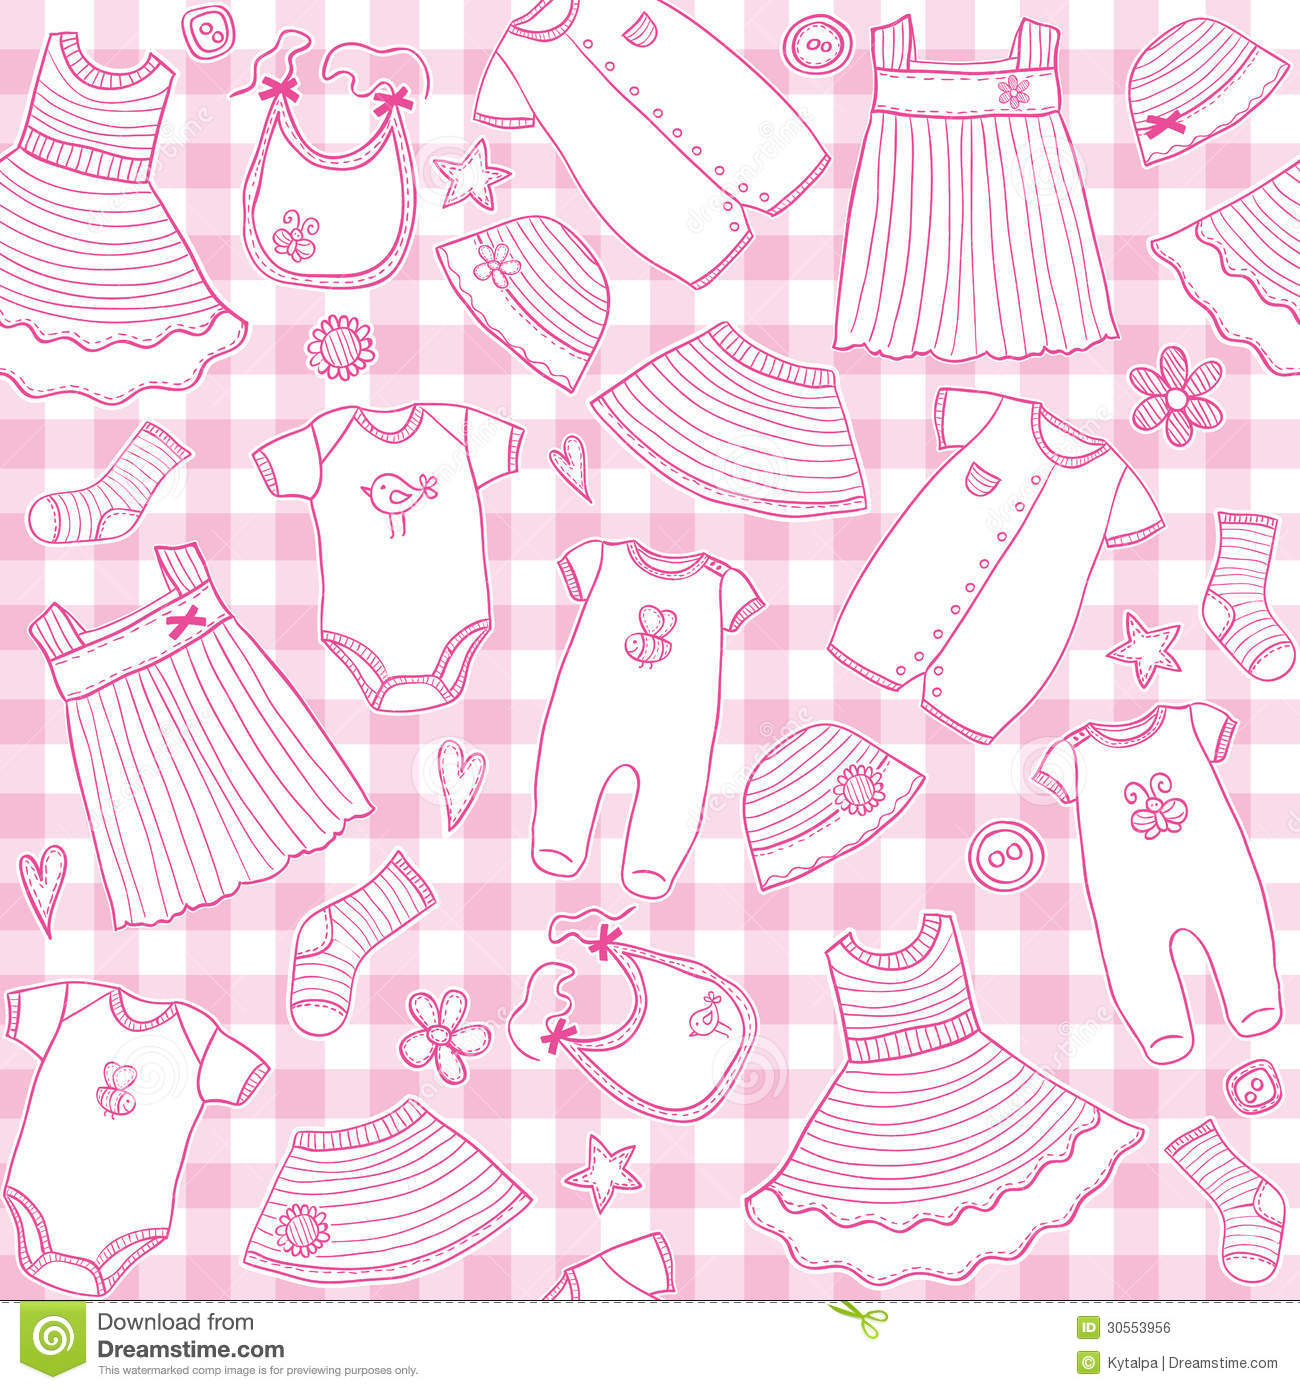 4c5135194c74 Baby Girl Clothes Seamless Pattern Stock Vector - Illustration of ...